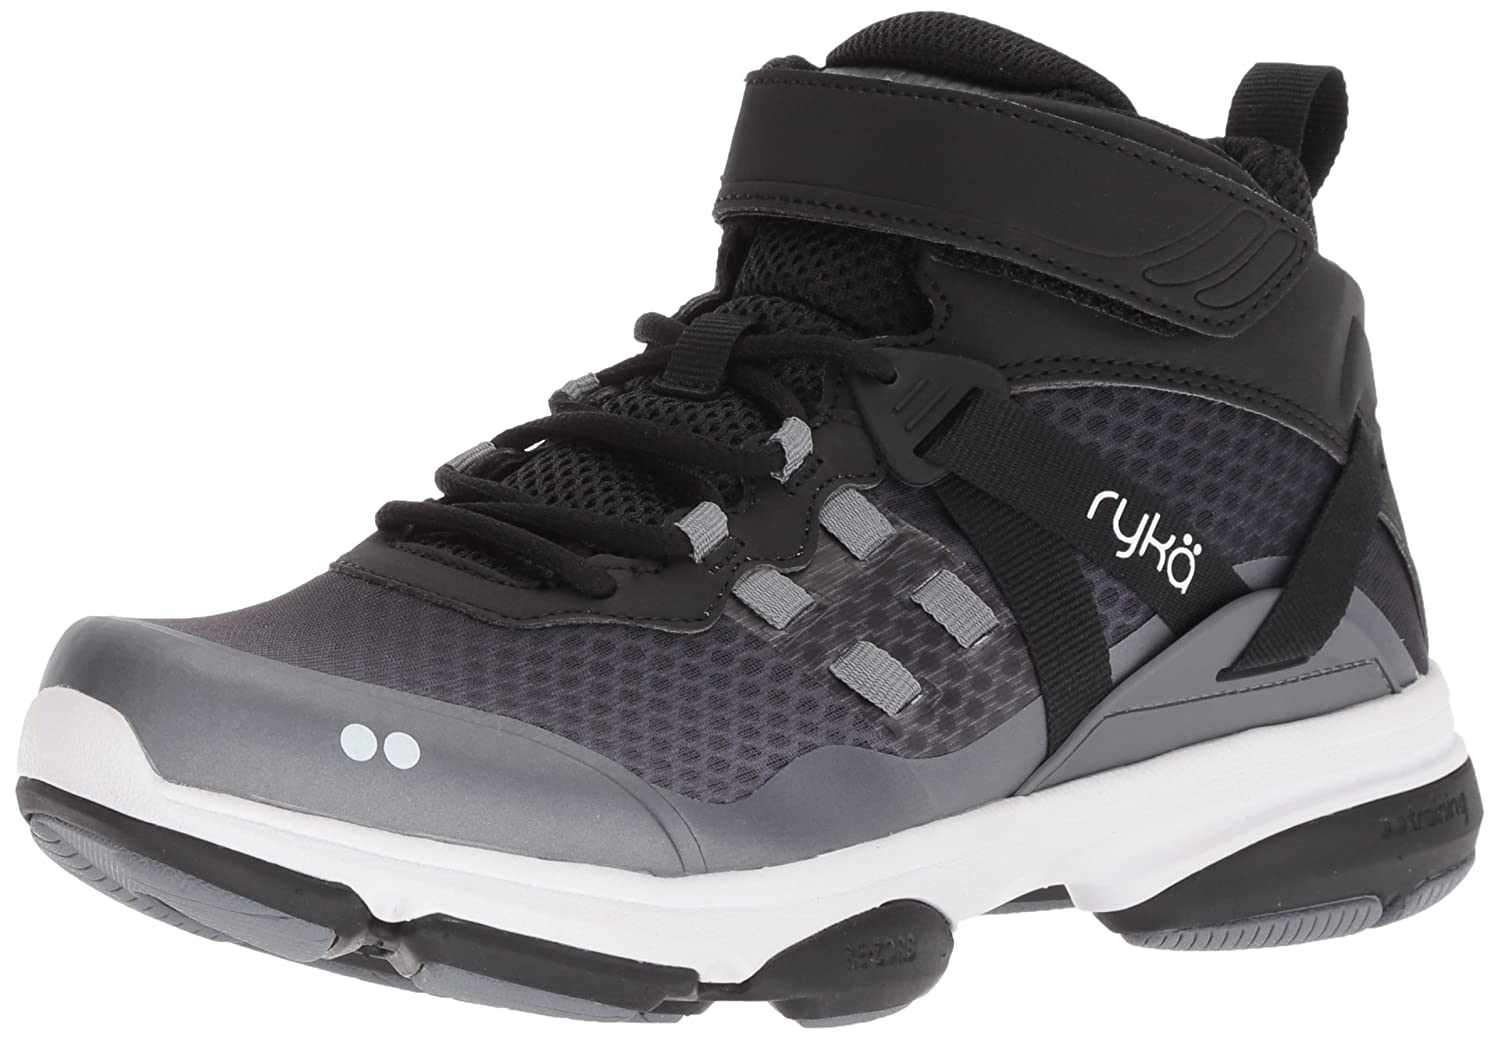 Ryka Women's Devotion Xt Mid Cross Trainer B079ZCHPYR 10 B(M) US|Black/Grey/White